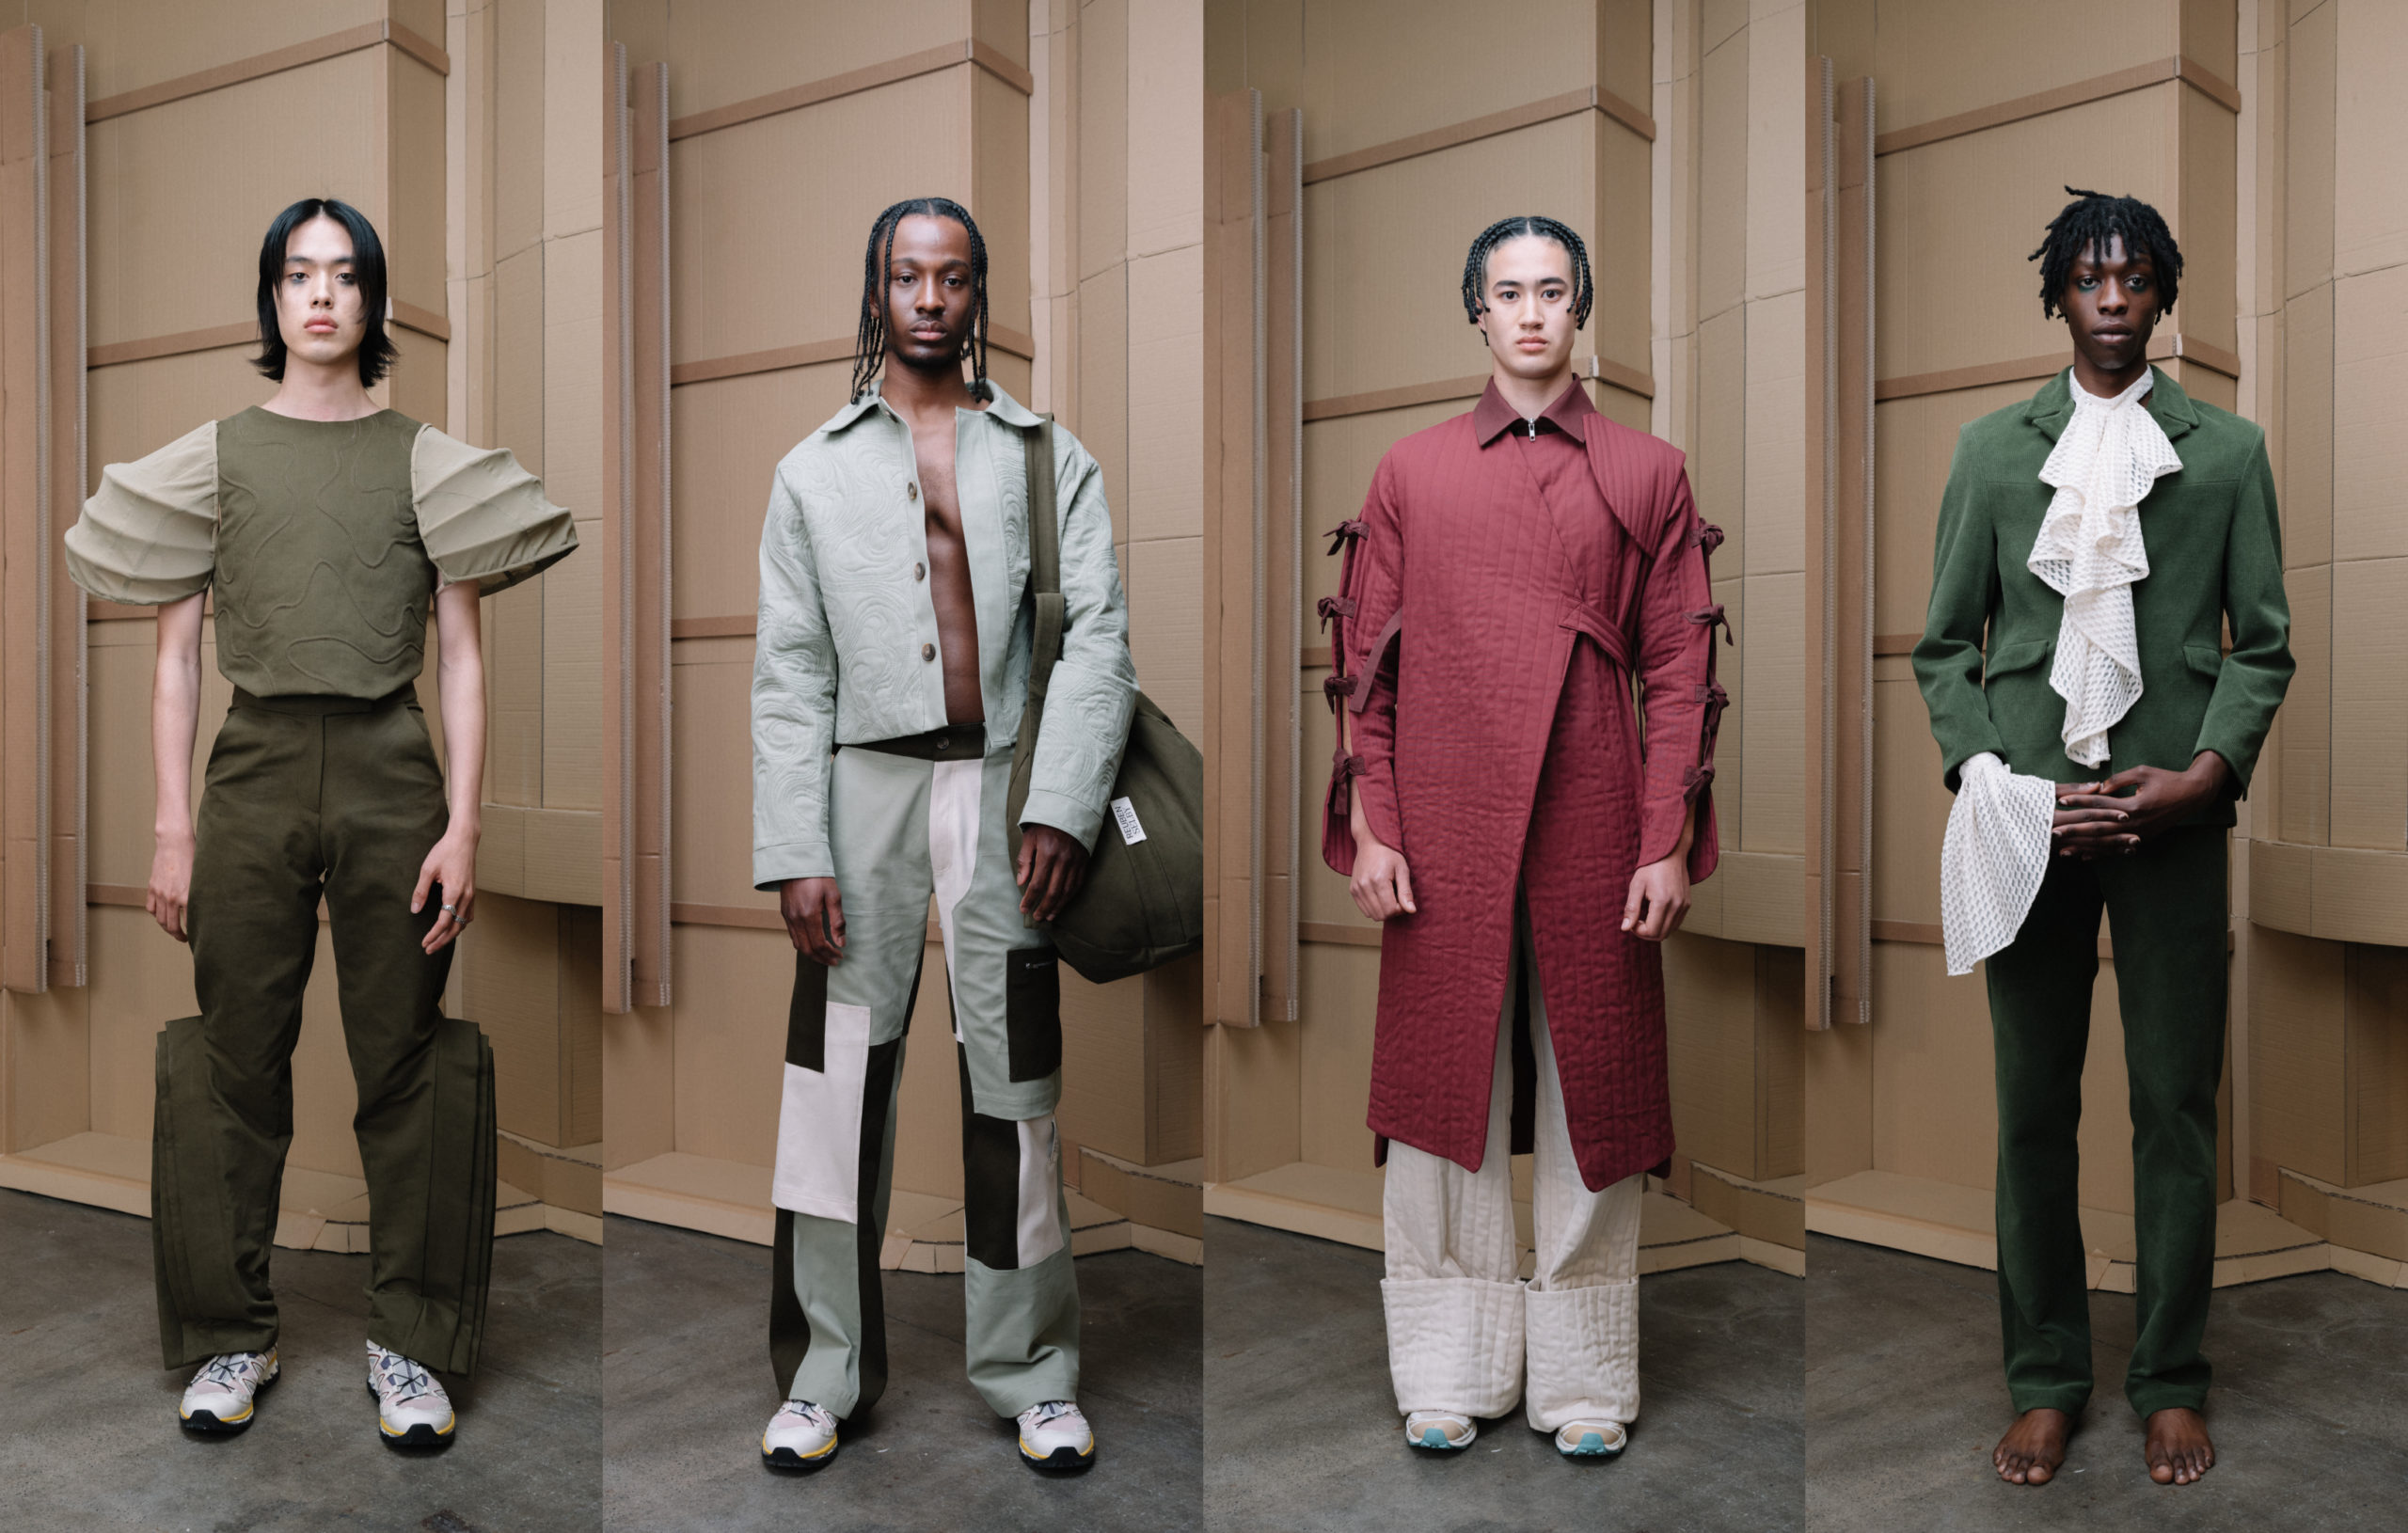 LFW: Reuben Selby Spring/Summer 2022 Collection & Interview